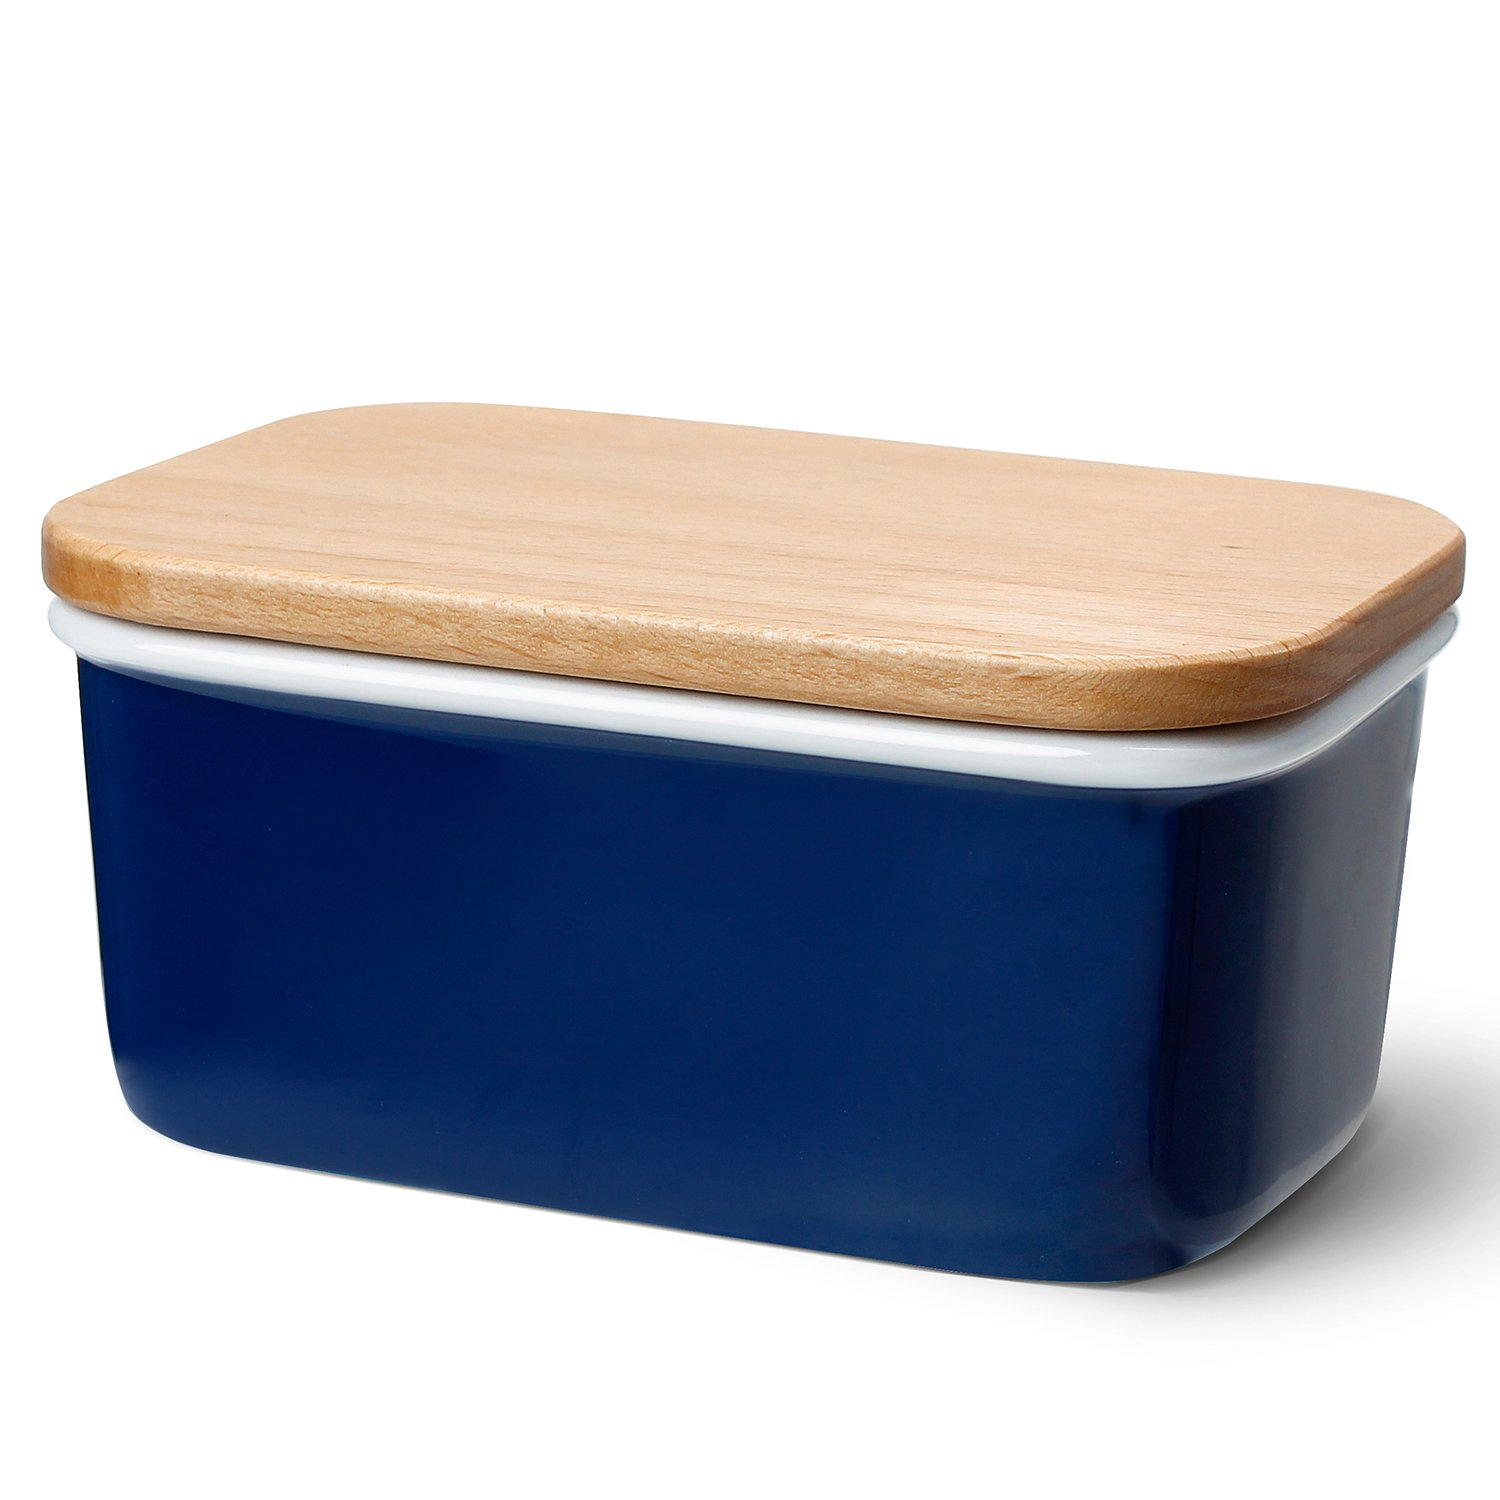 Sweese 301.103 Large Butter Dish - Porcelain Keeper with Beech Wooden Lid, Perfect for 2 Sticks of Butter, Navy